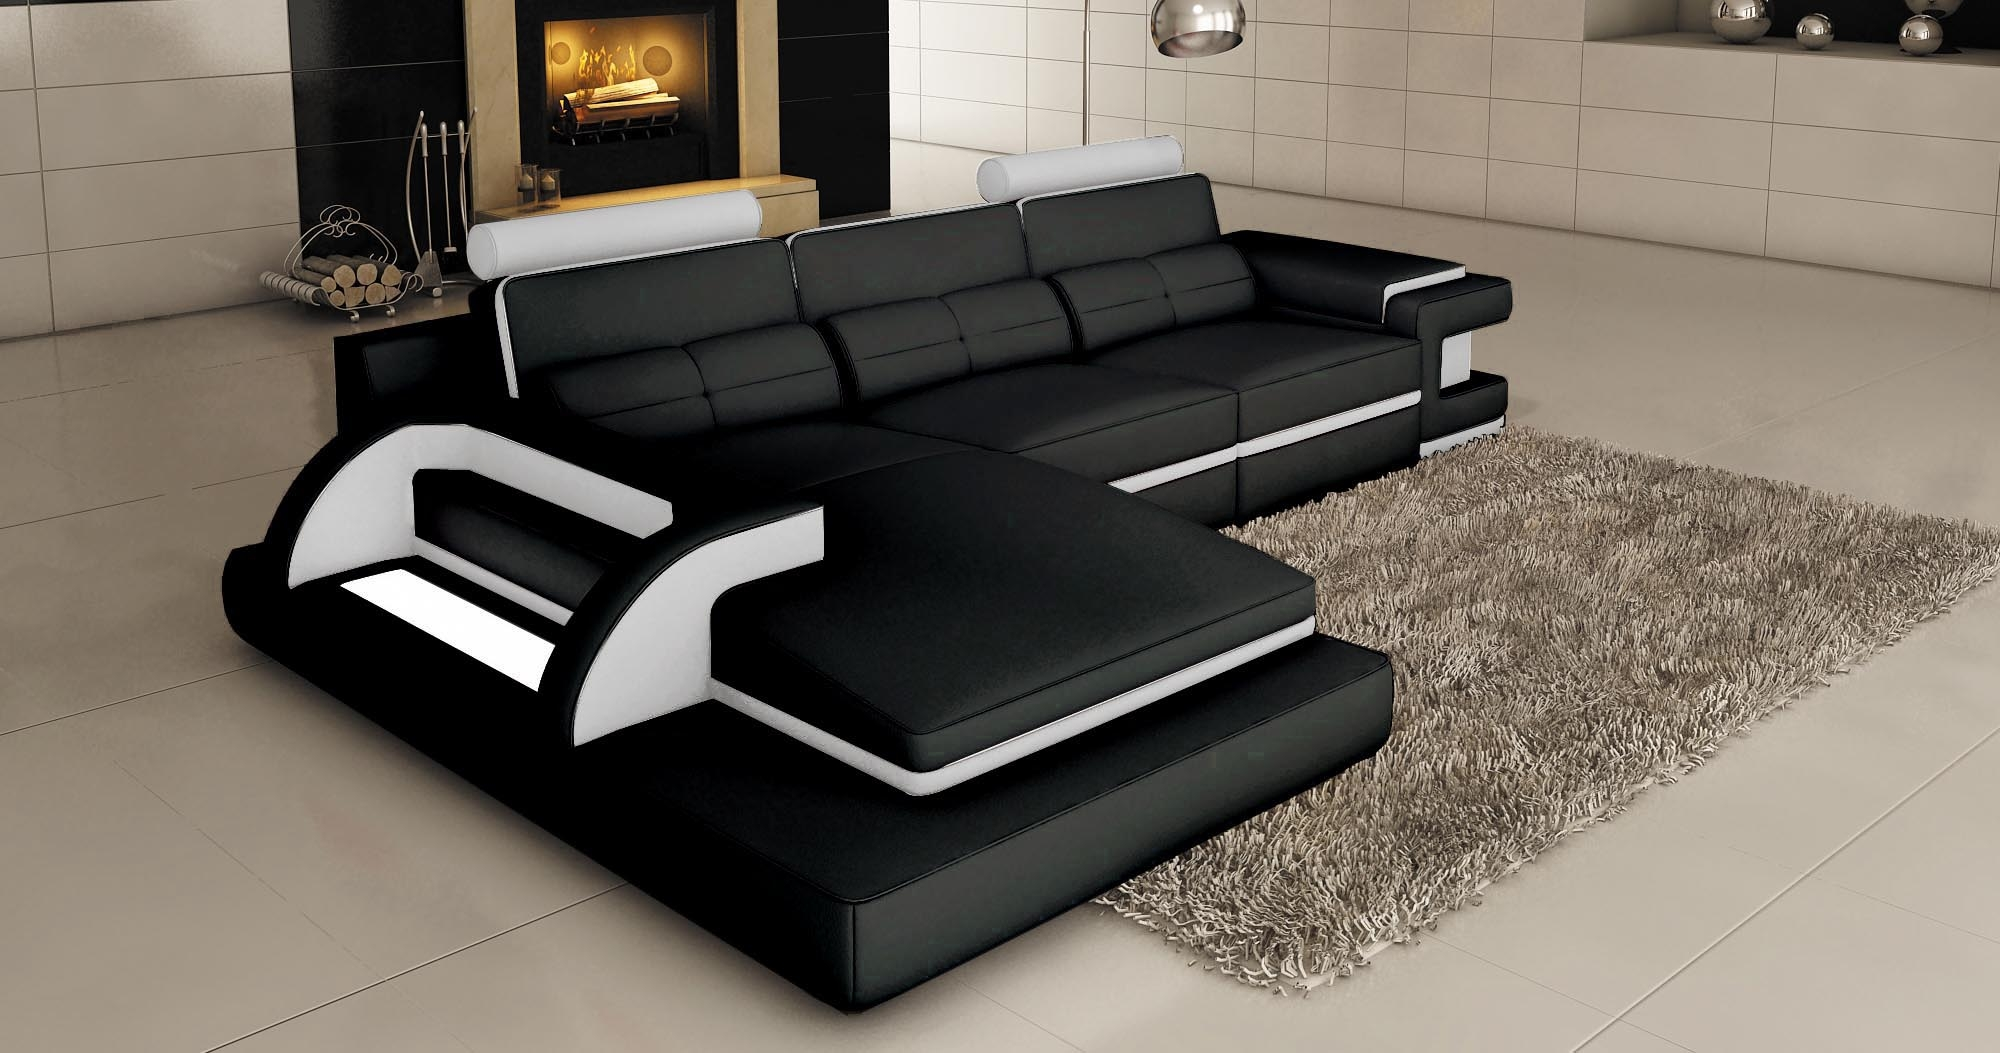 Canap d 39 angle archives page 4 sur 15 royal sofa for Canape d angle design